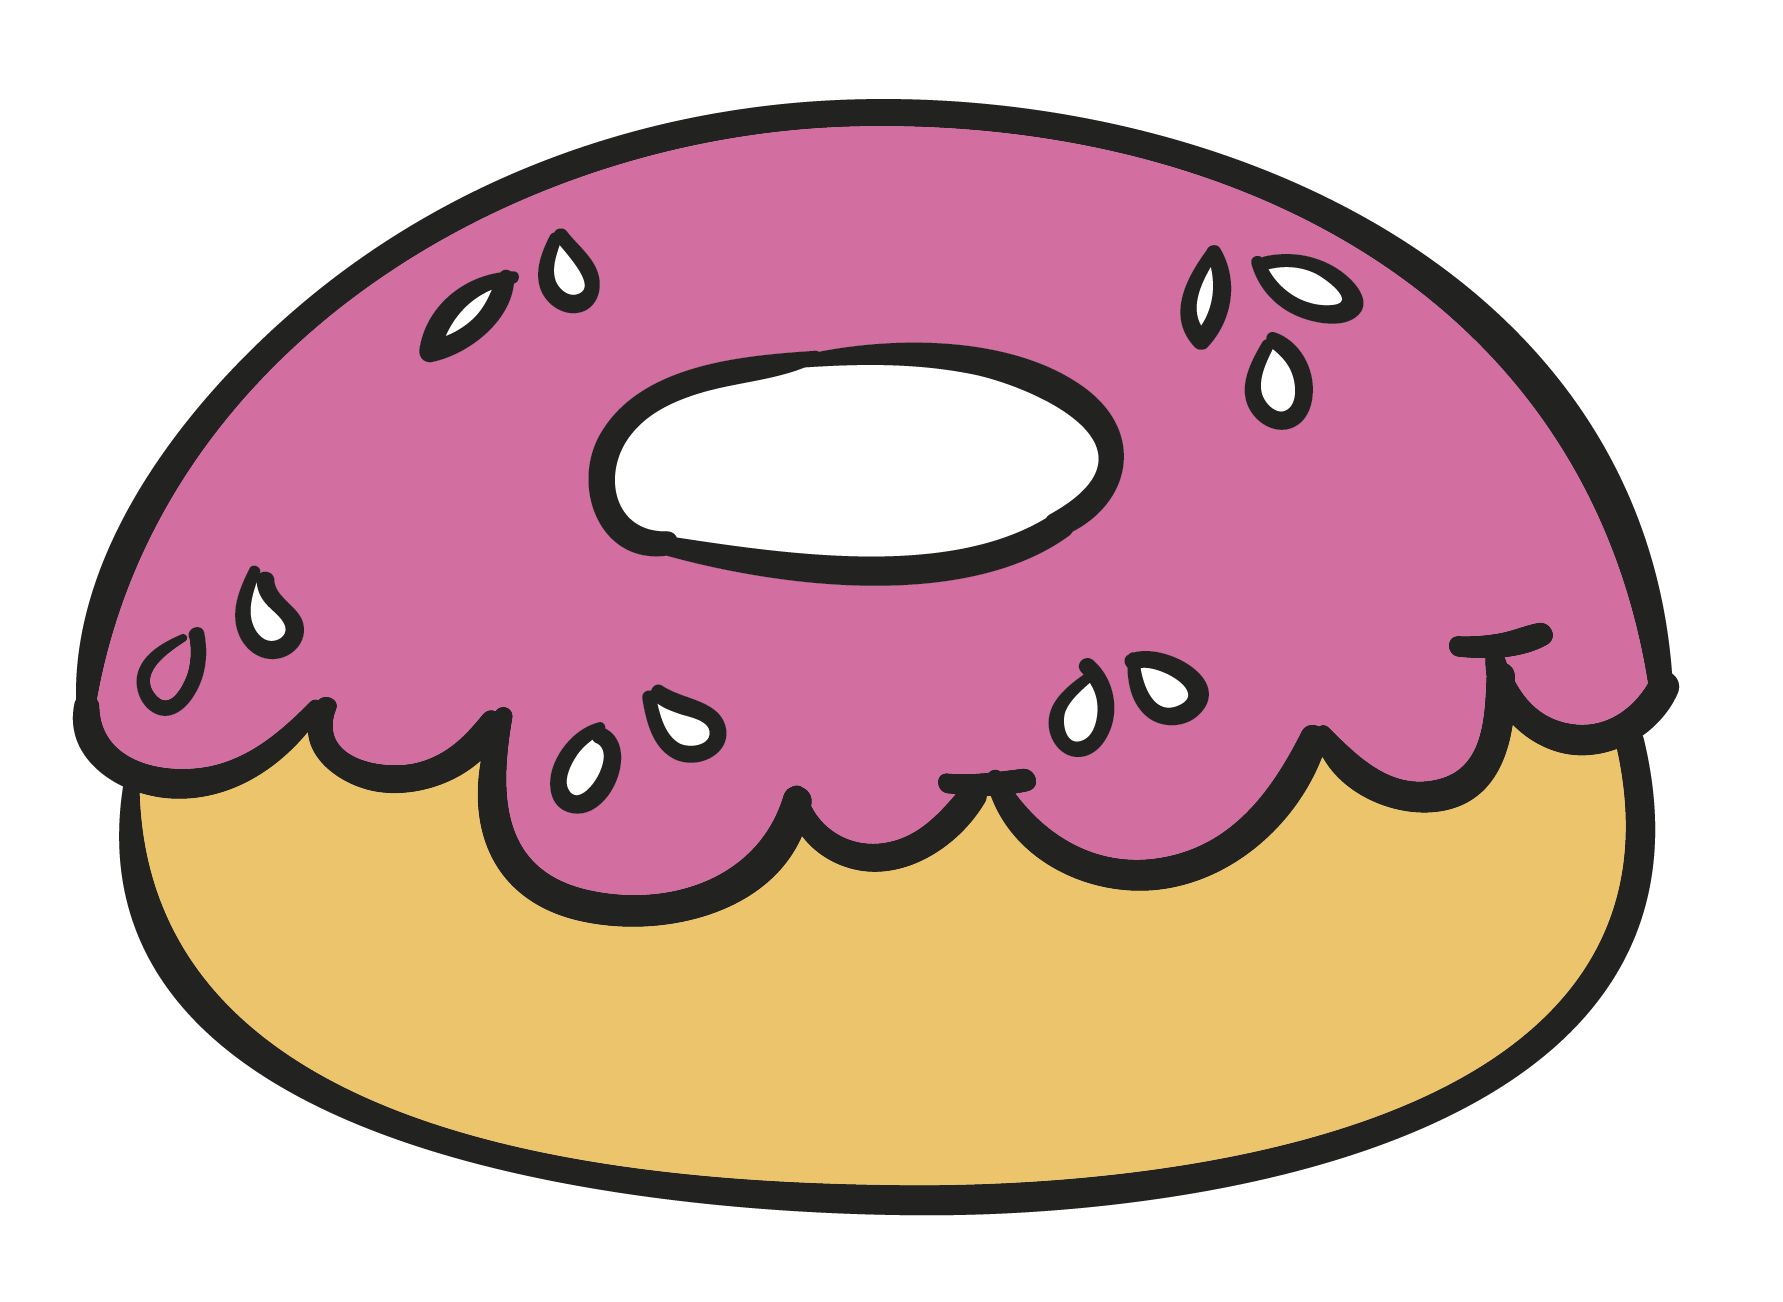 Doughnut cartoon clip art. Donut clipart juice